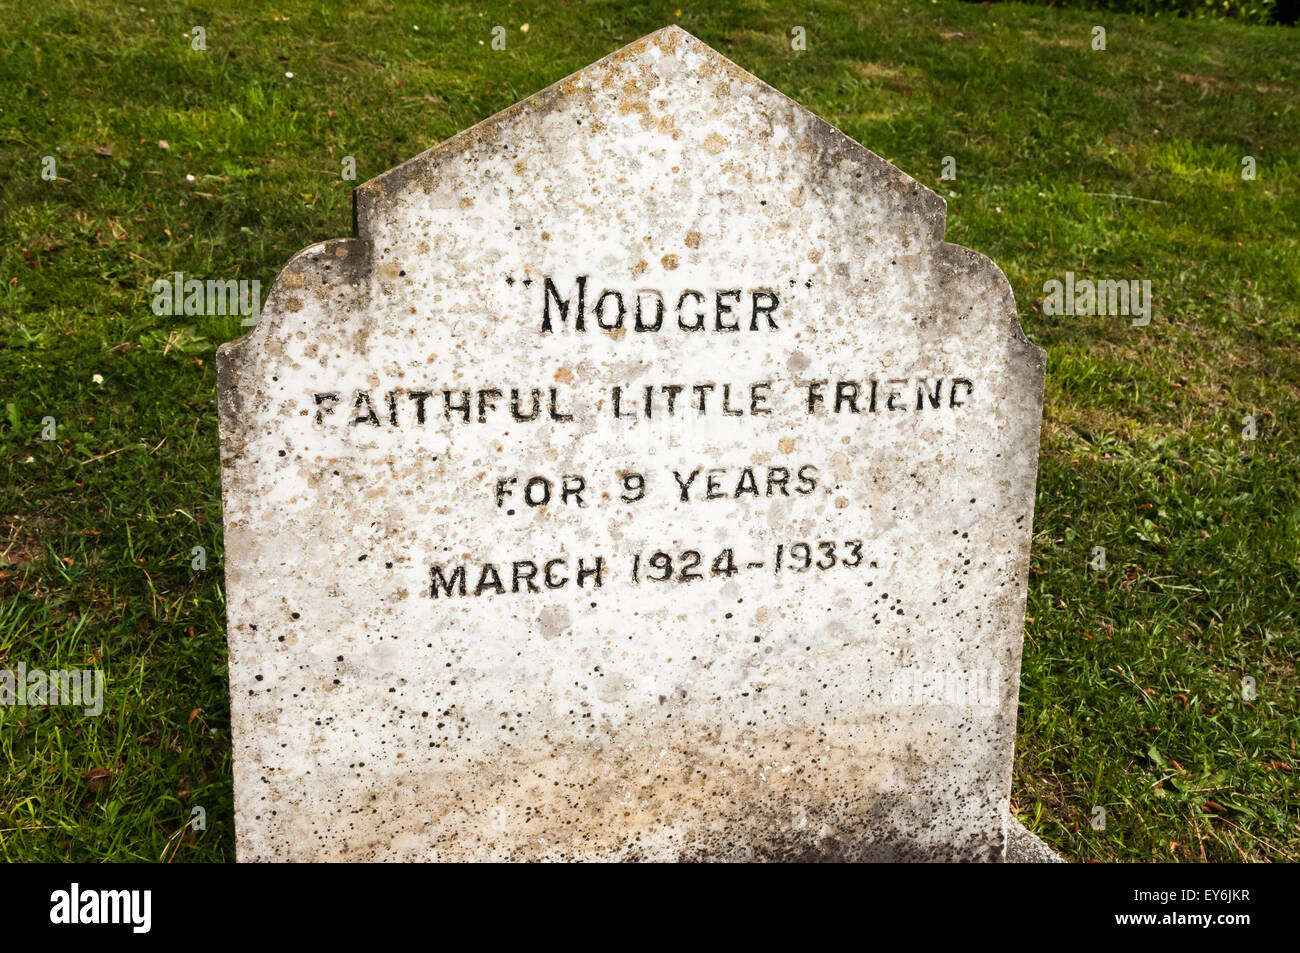 Gravestone for a dog named 'Modger - Faithful Little Friend' in a pet cemetery - Stock Image